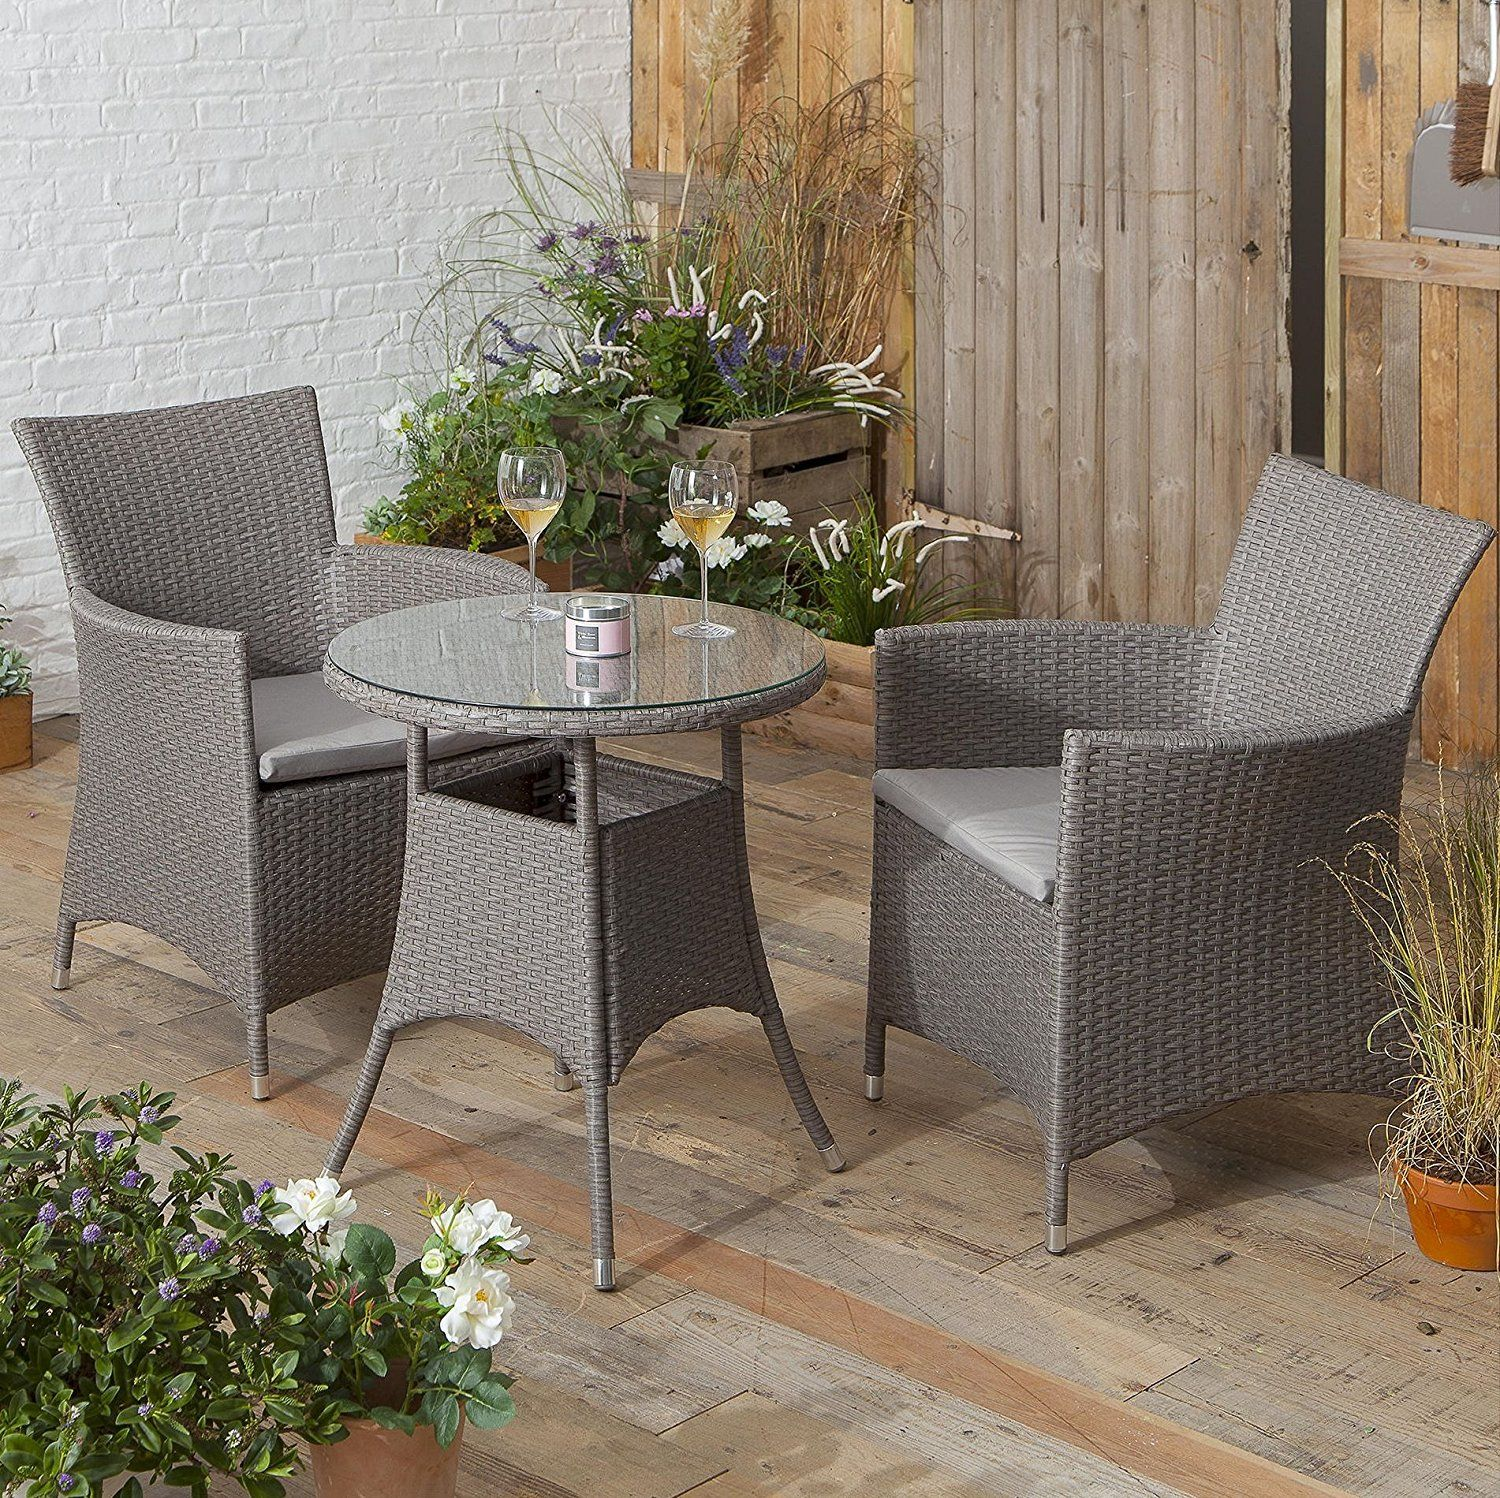 Rattan Style Bistro Set Garden Patio Table With 2 Chairs Grey Co Uk Kitchen Home